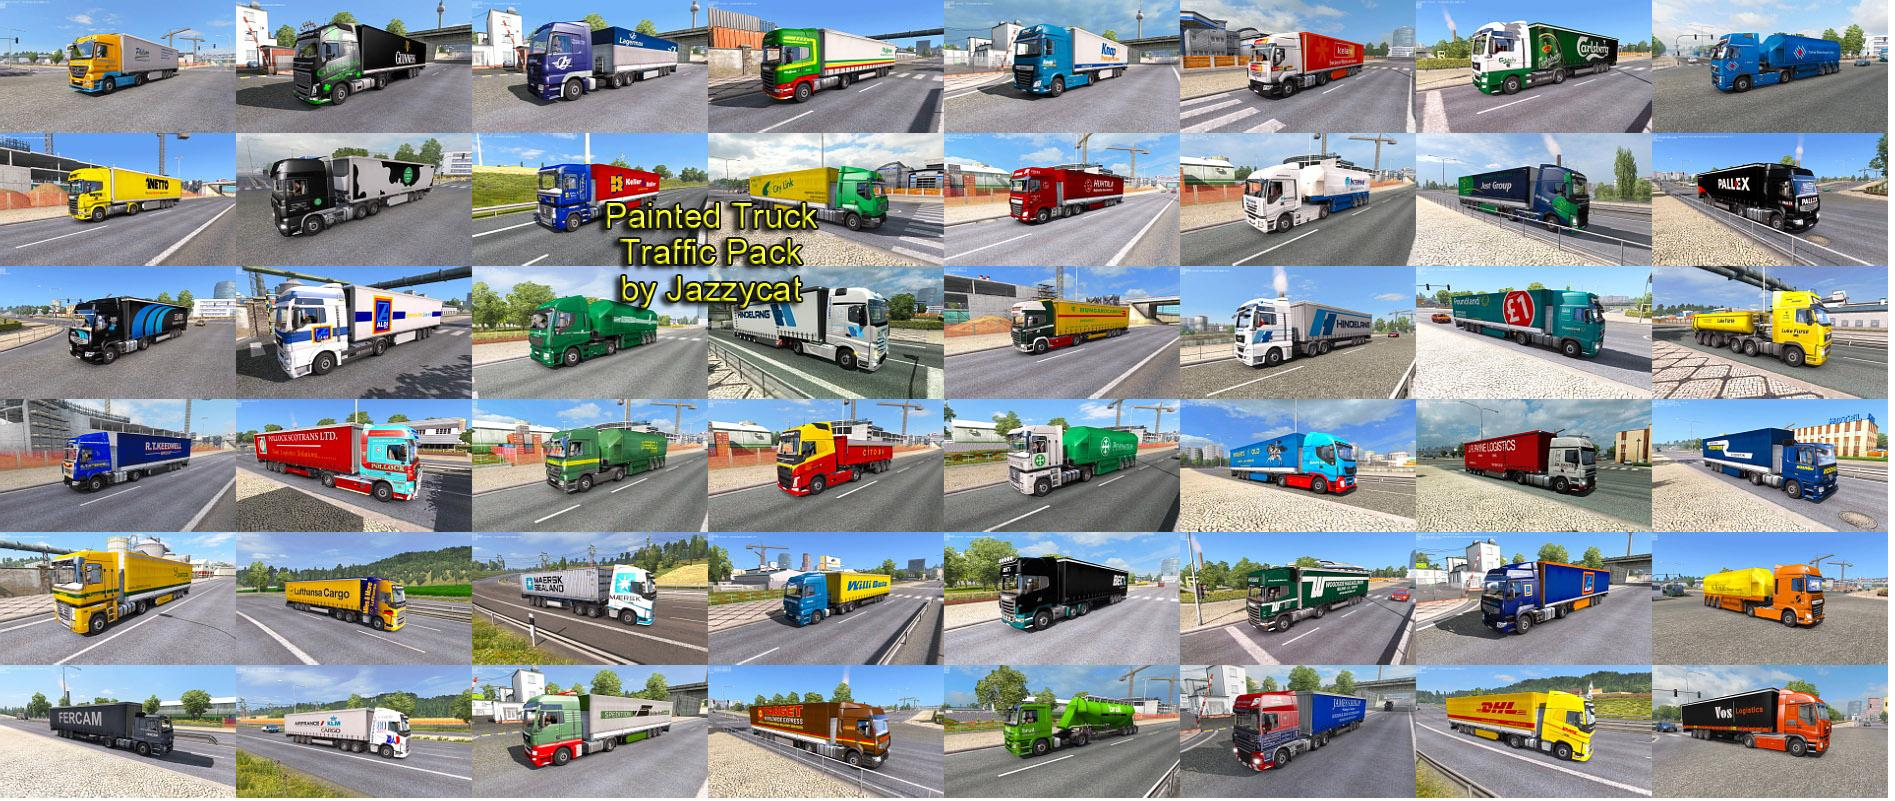 fix-for-painted-truck-traffic-pack-by-jazzycat-v2-2-for-patch-1-23-x_1